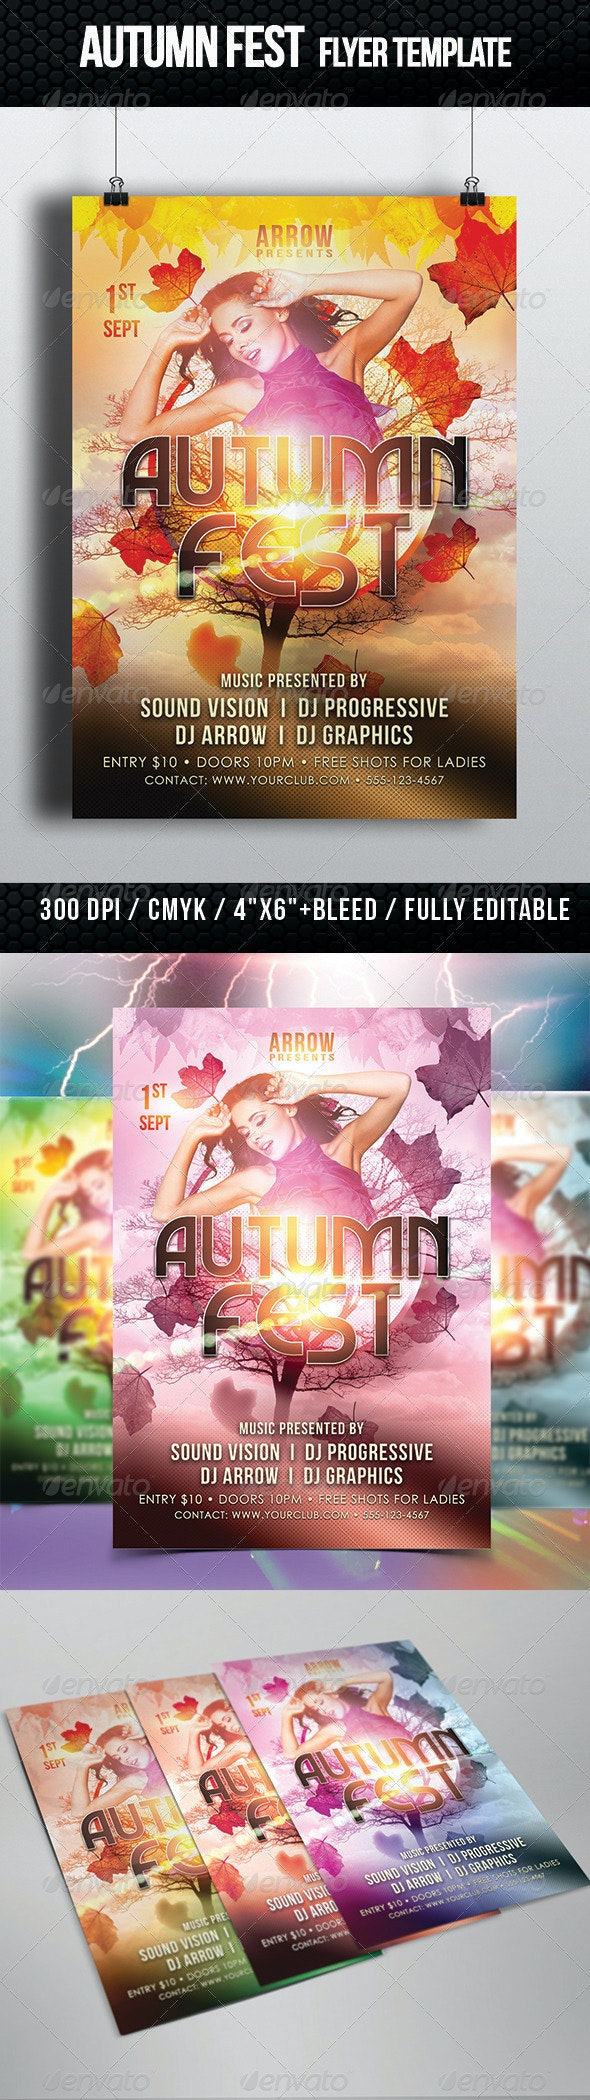 Autumn Fest Flyer Template - Clubs & Parties Events